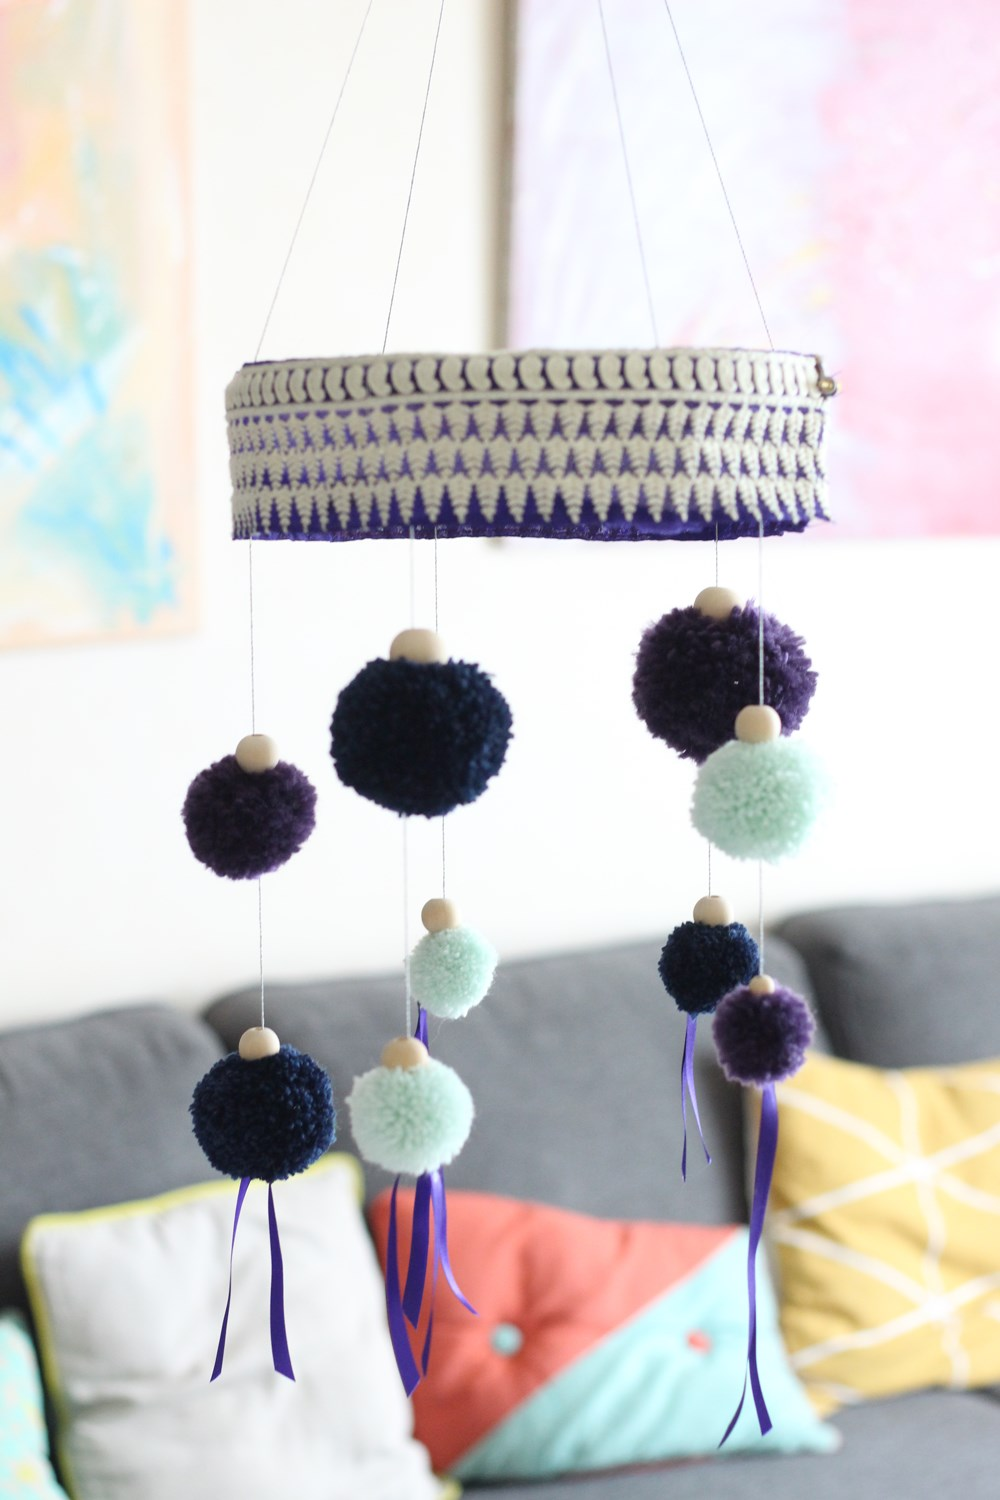 projet-diy-suspension-pompoms-rubans-14-creativa-2016